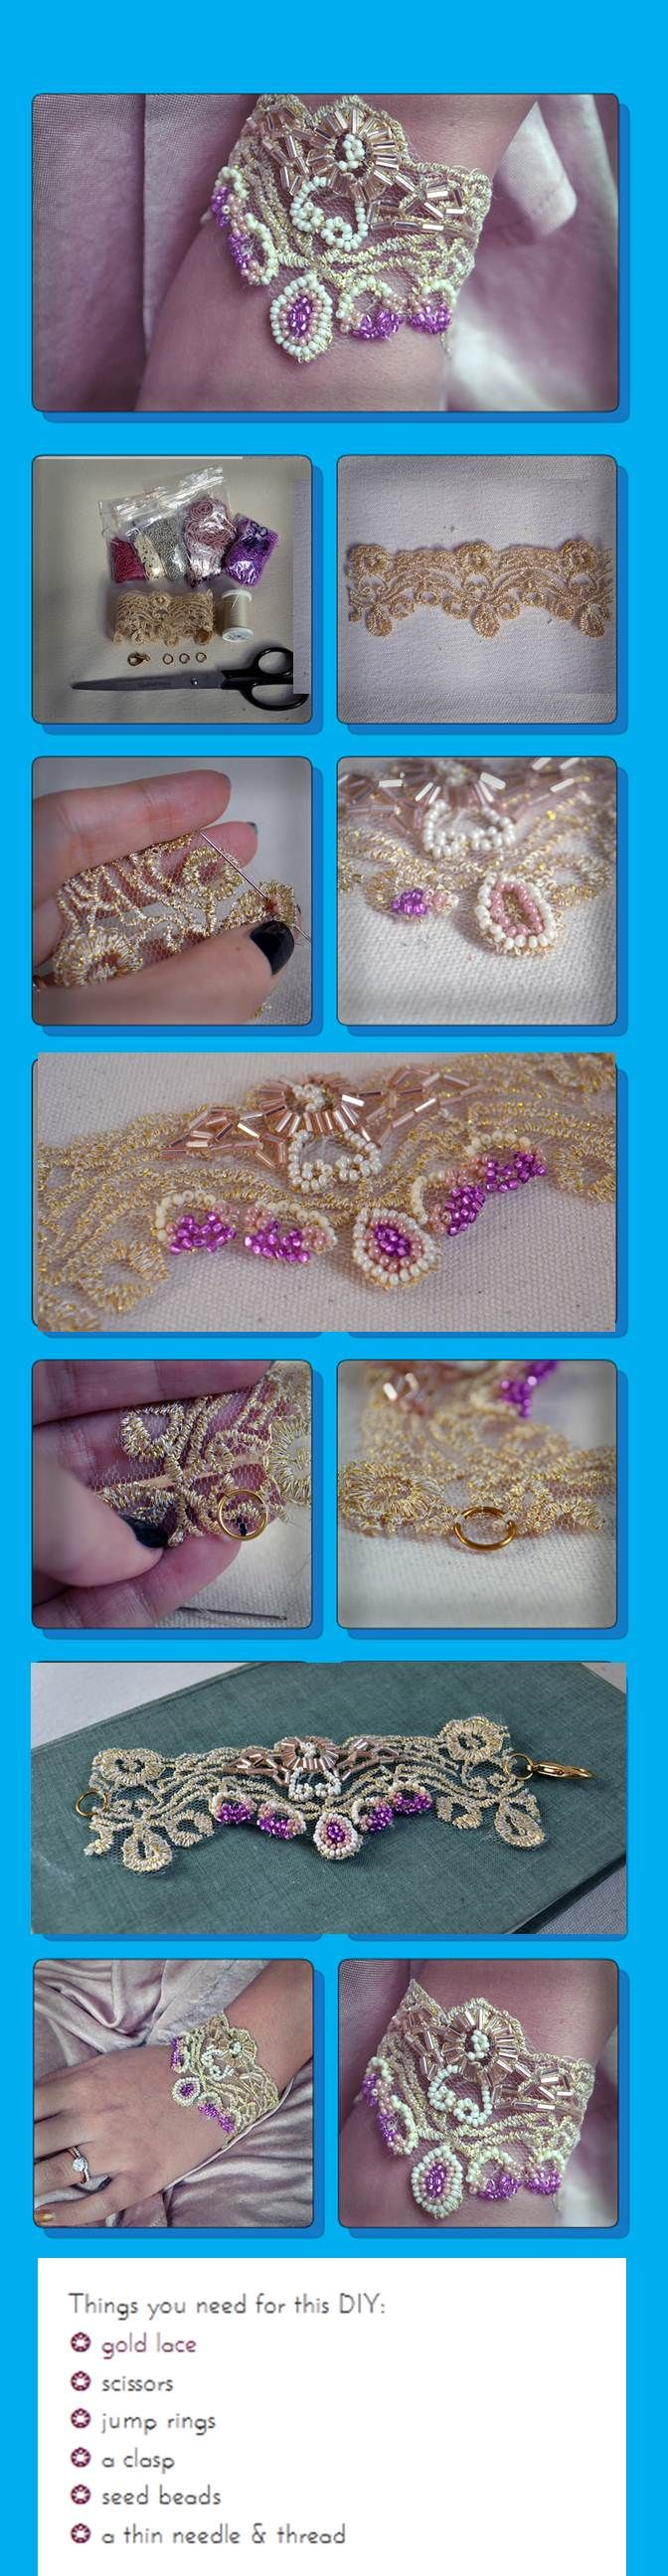 Shine & Trim DIY: Beaded Gold Lace Bracelet  Things you need for this DIY:  ❂ gold lace  ❂ scissors  ❂ jump rings  ❂ a clasp  ❂ seed beads  ❂ a thin needle & thread    Total time:  2 hours.  Very Impressive!  Great Blog